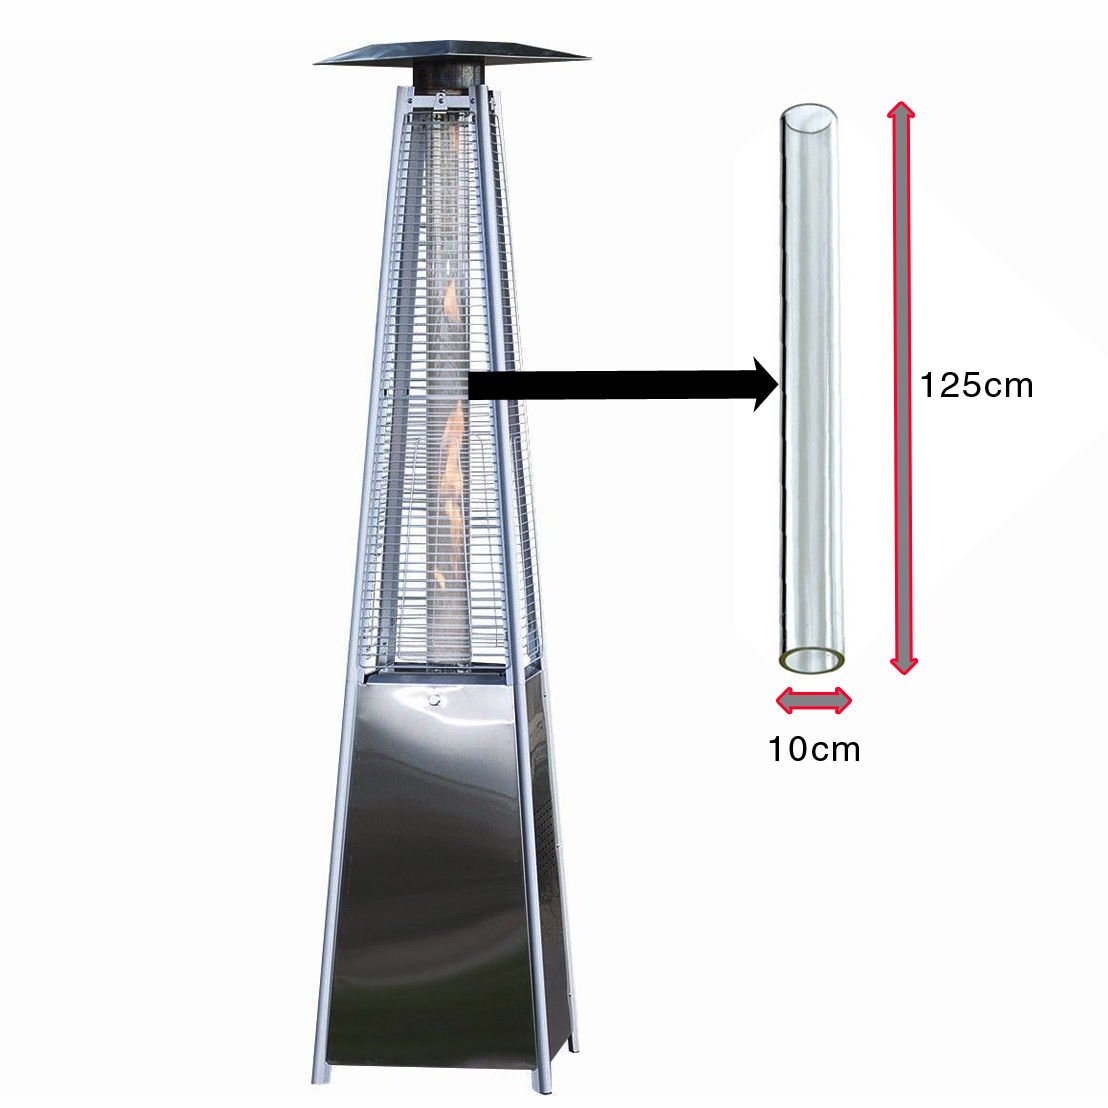 Glass Tube Replacement For Pyramid Gas Patio Heater